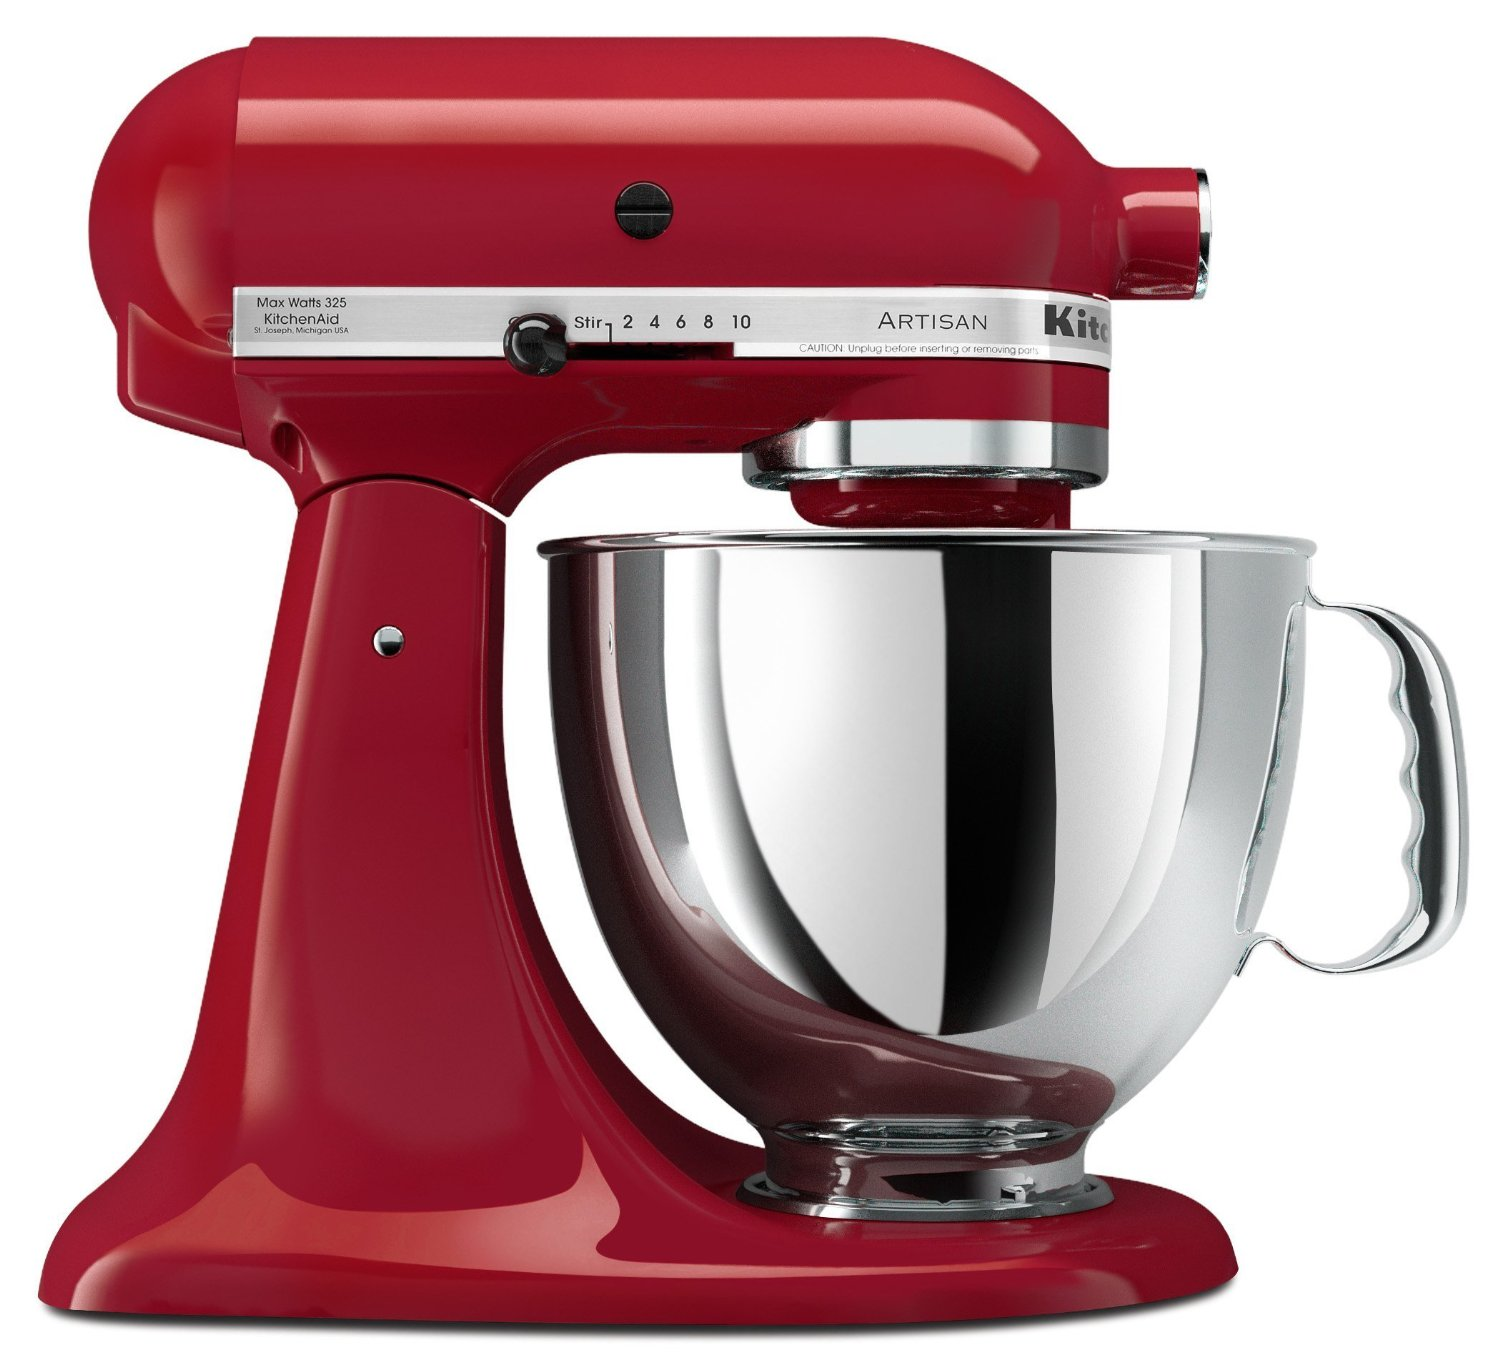 kitchen aid professional mixer best rta cabinets tuesday's tools and tips- bosch or ...